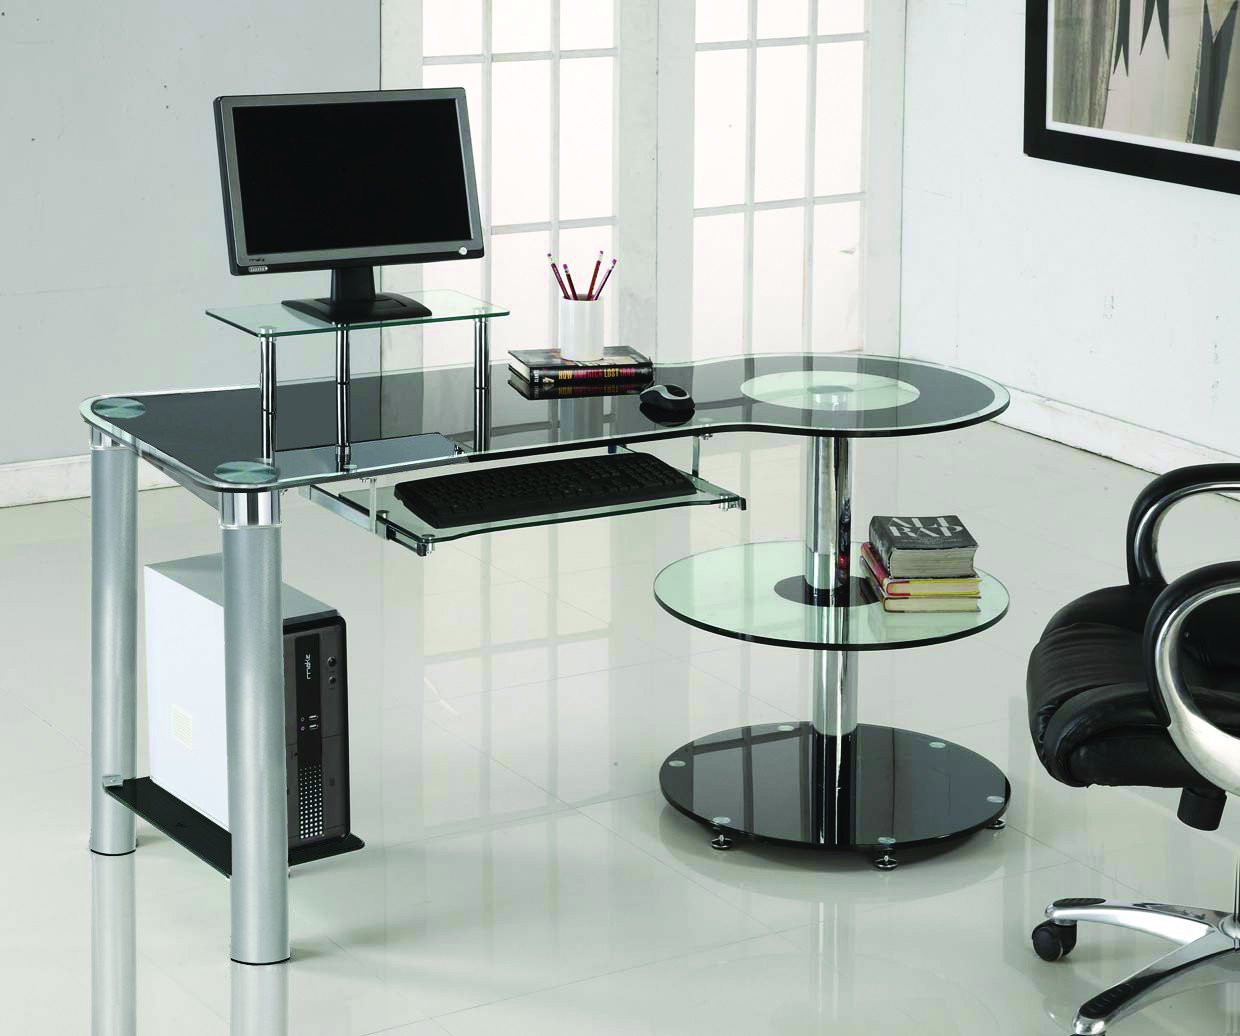 amazoncom black glass  chrome modern desk with circular shelves kitchen dining. amazoncom black glass  chrome modern desk with circular shelves